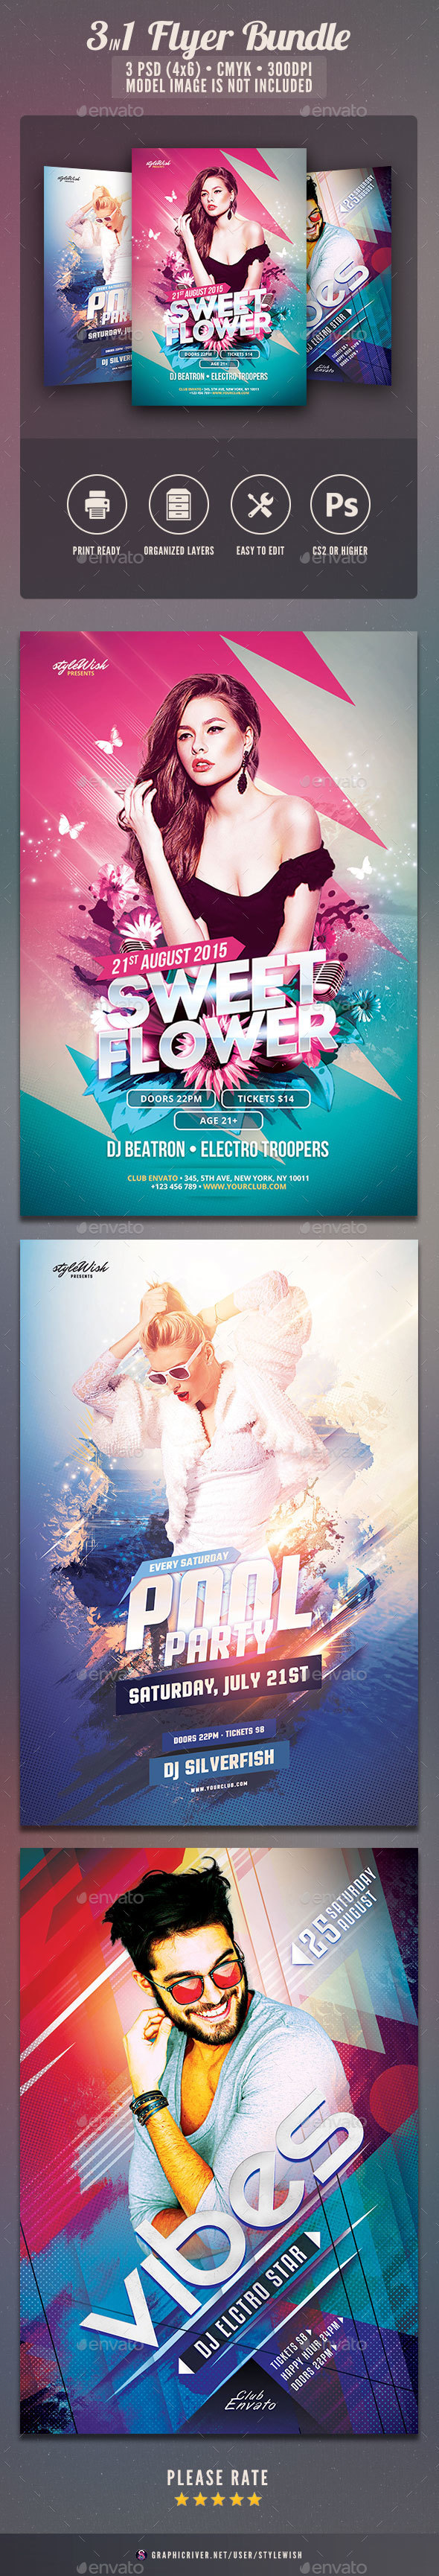 Party Flyer Bundle Vol.25 - Clubs & Parties Events